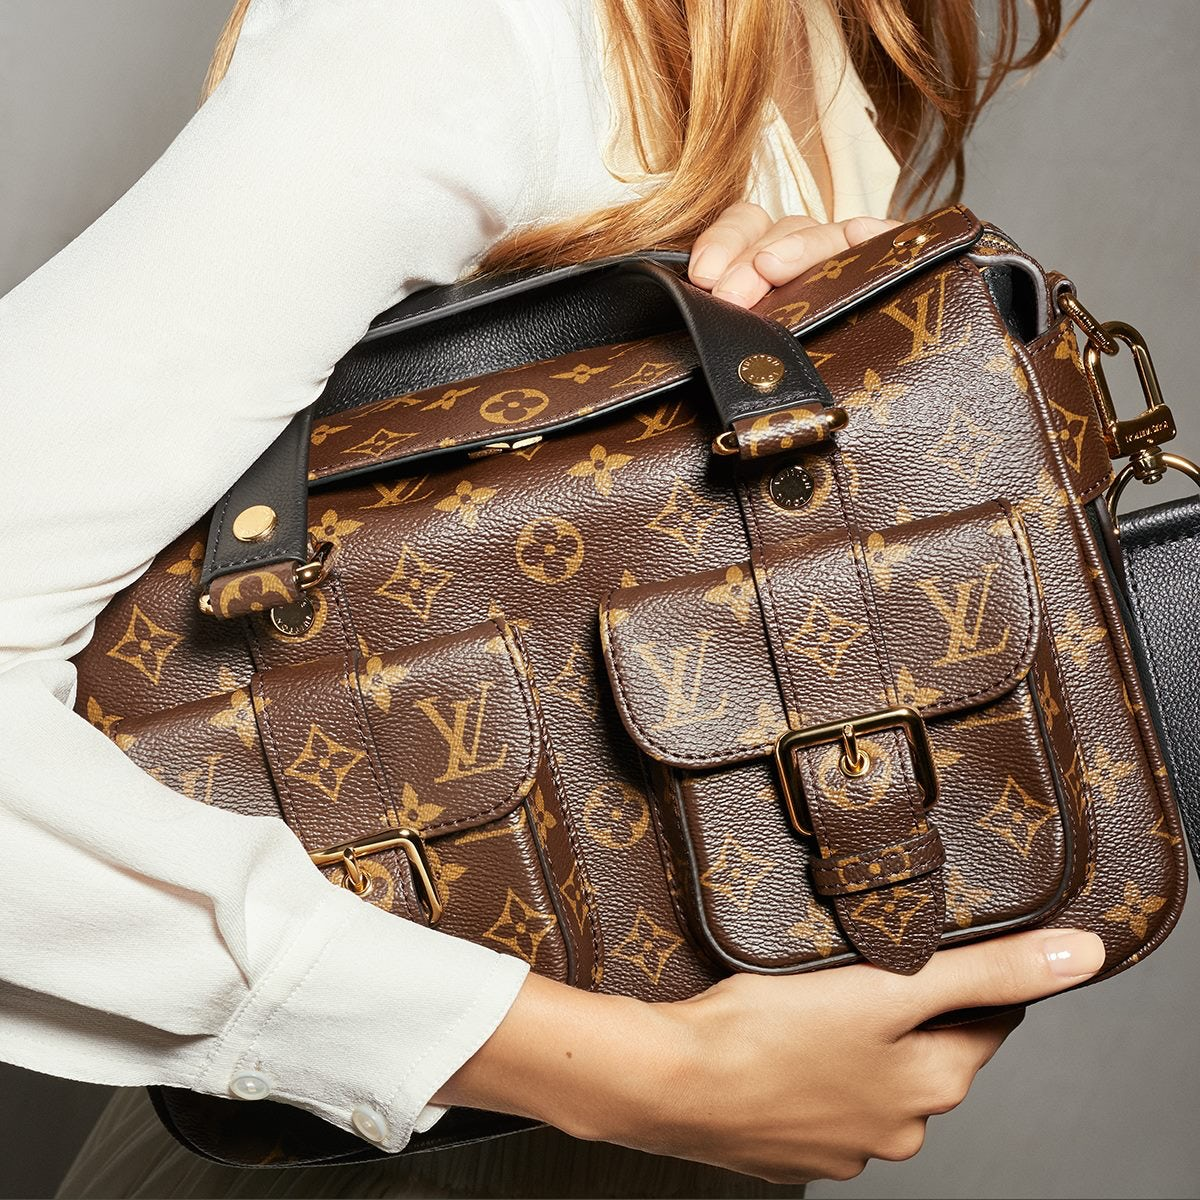 Louis Vuitton and Hermès Lead Interbrand Ranking, as Ralph Lauren Is Dropped